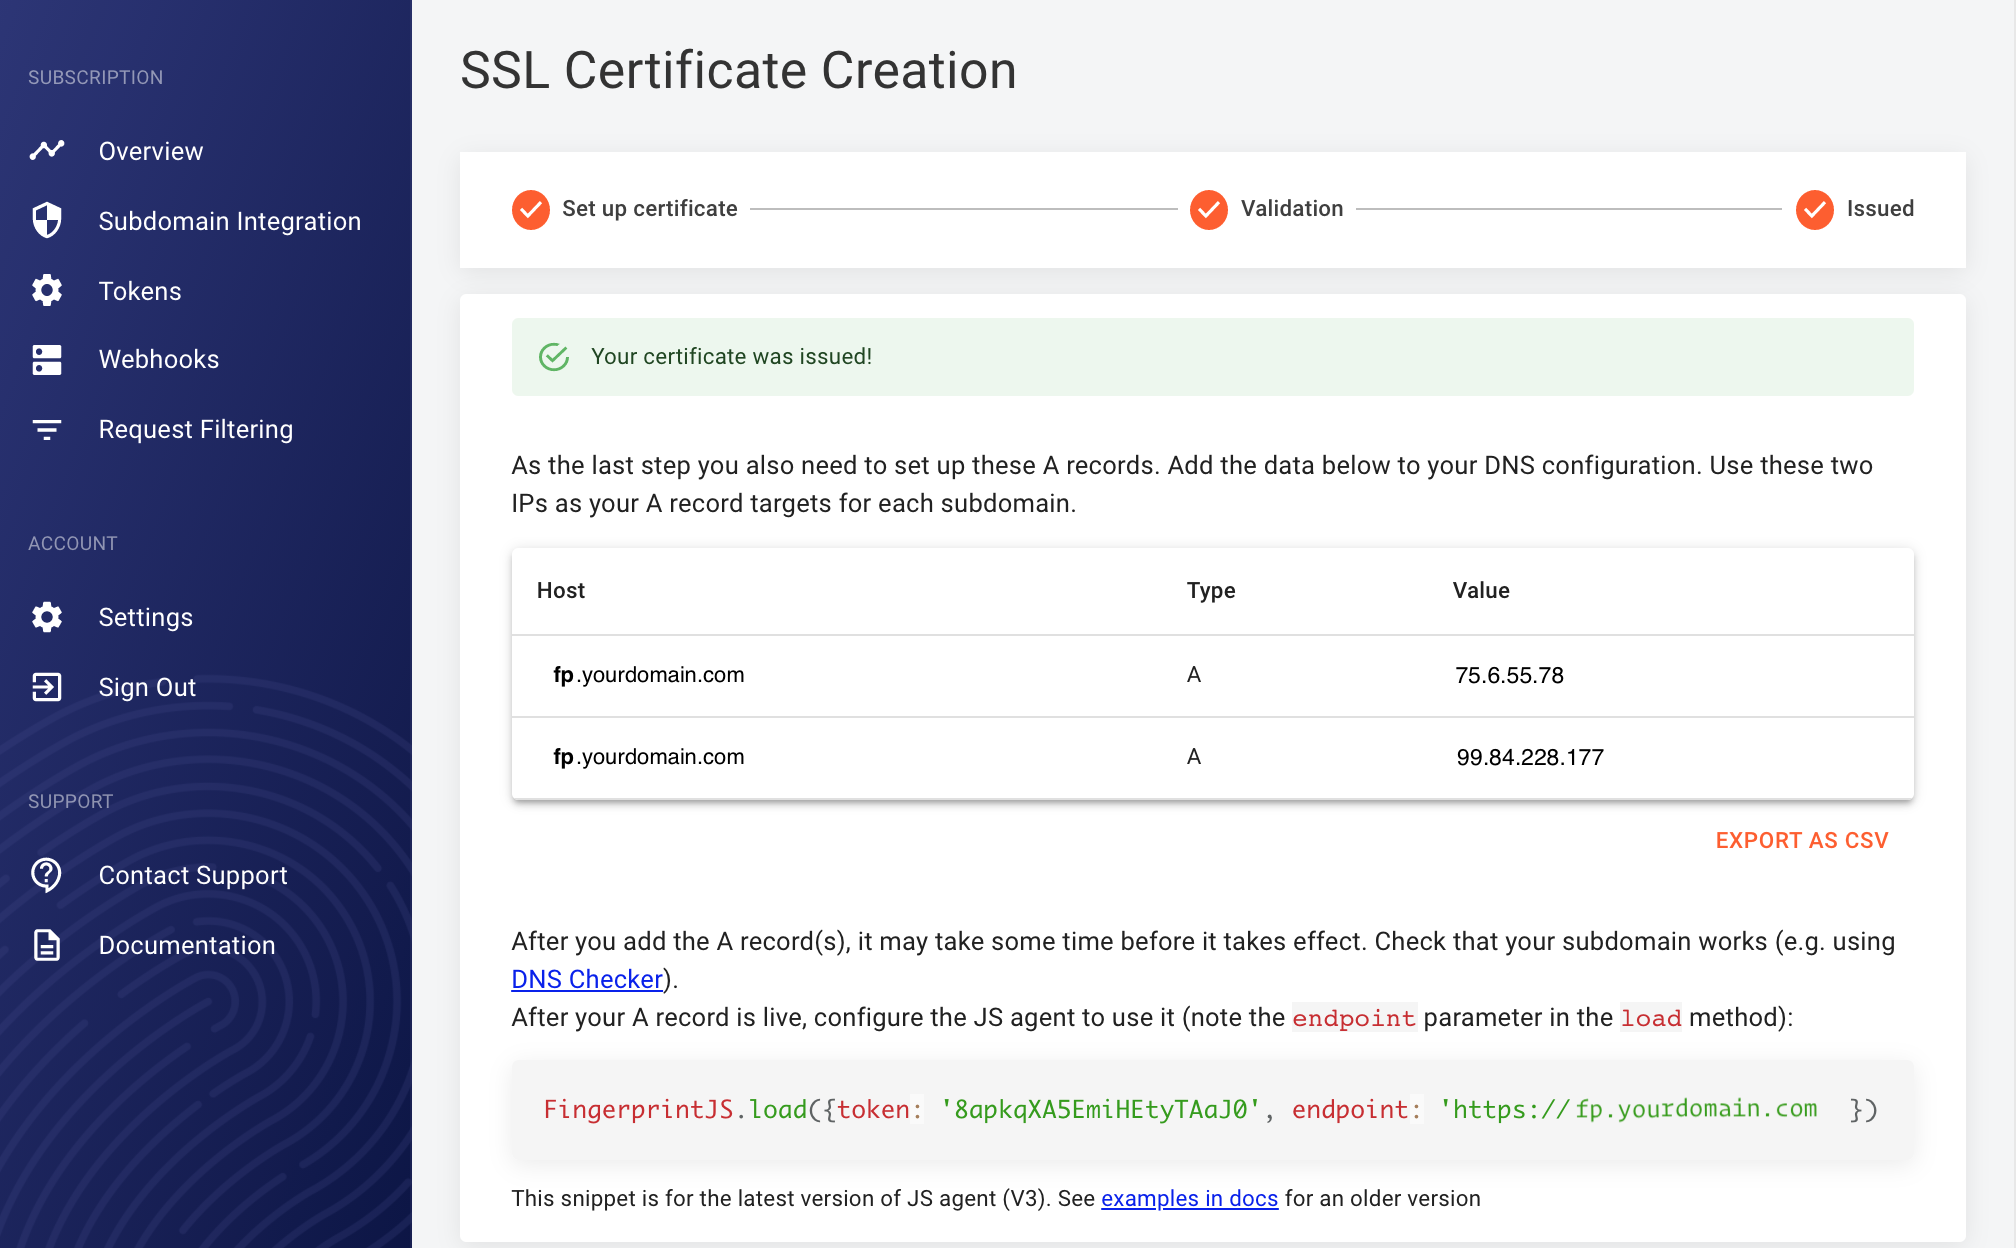 Screenshot of a completed SSL certificate creation process